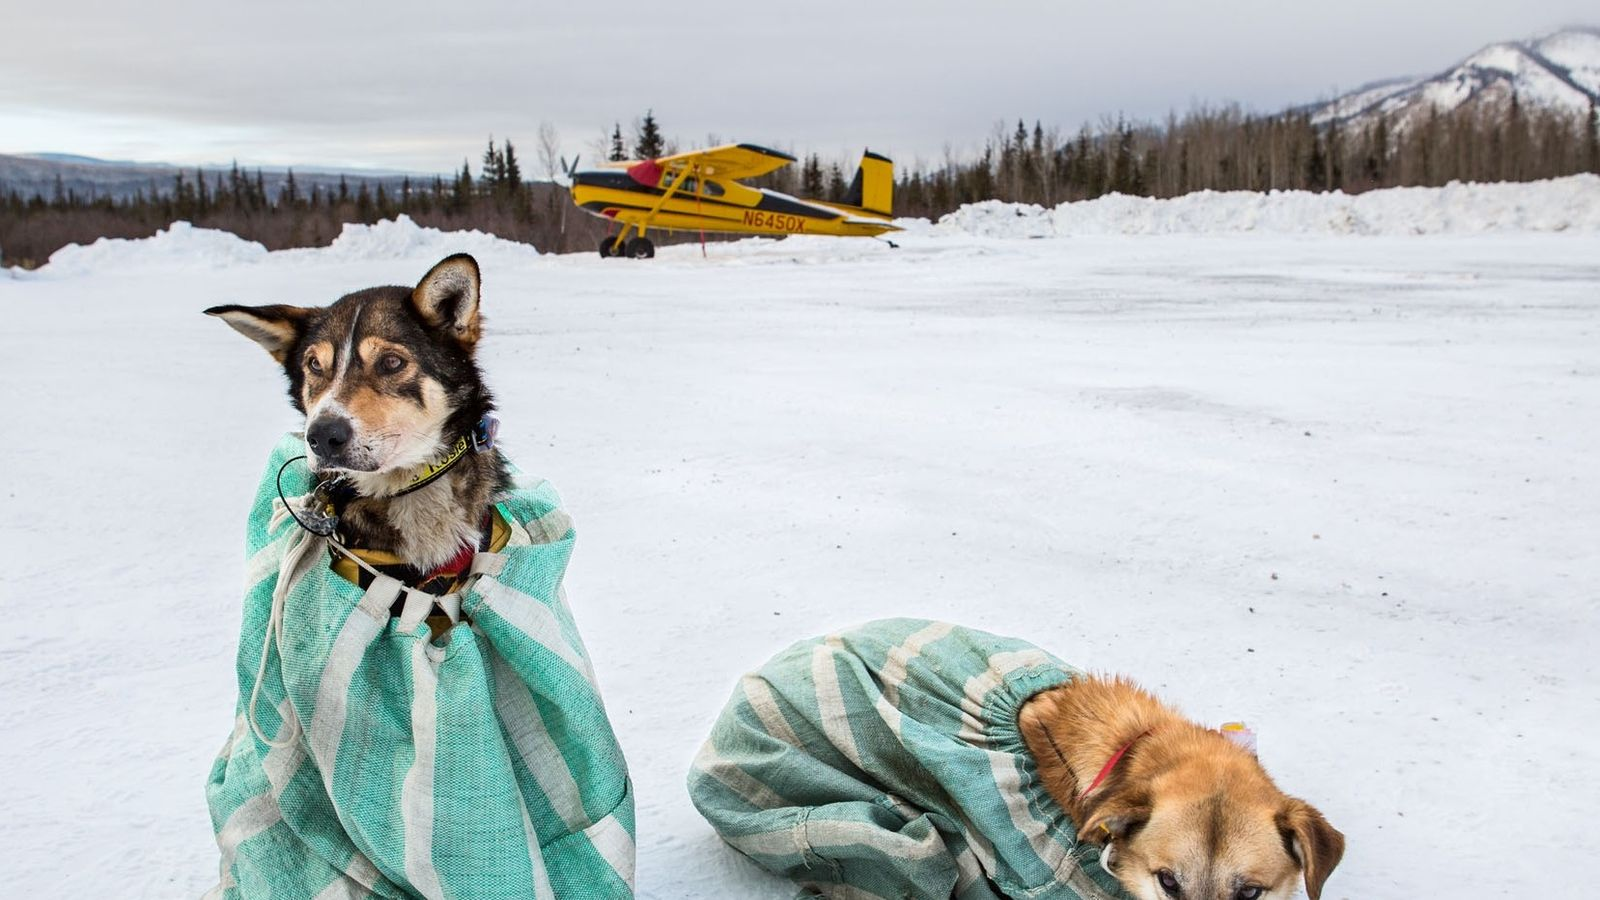 During the long Yukon Quest sled dog race, it's common for dogs to be dropped from ...